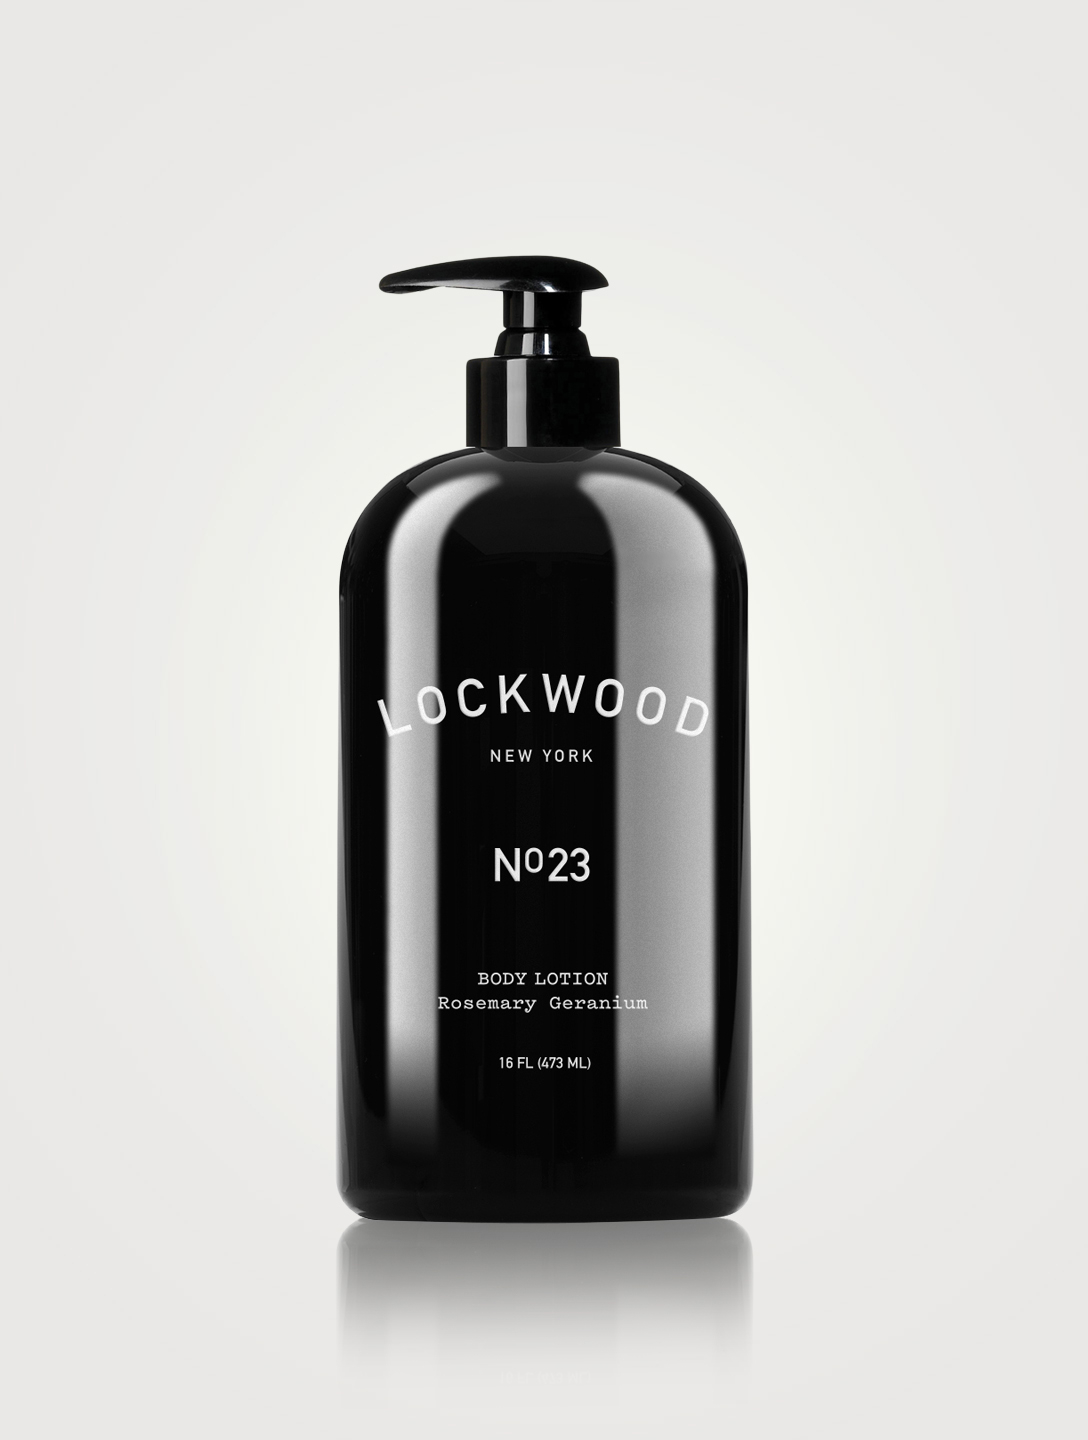 LOCKWOOD NEW YORK No.23 Rosemary Geranium Body Lotion Beauty